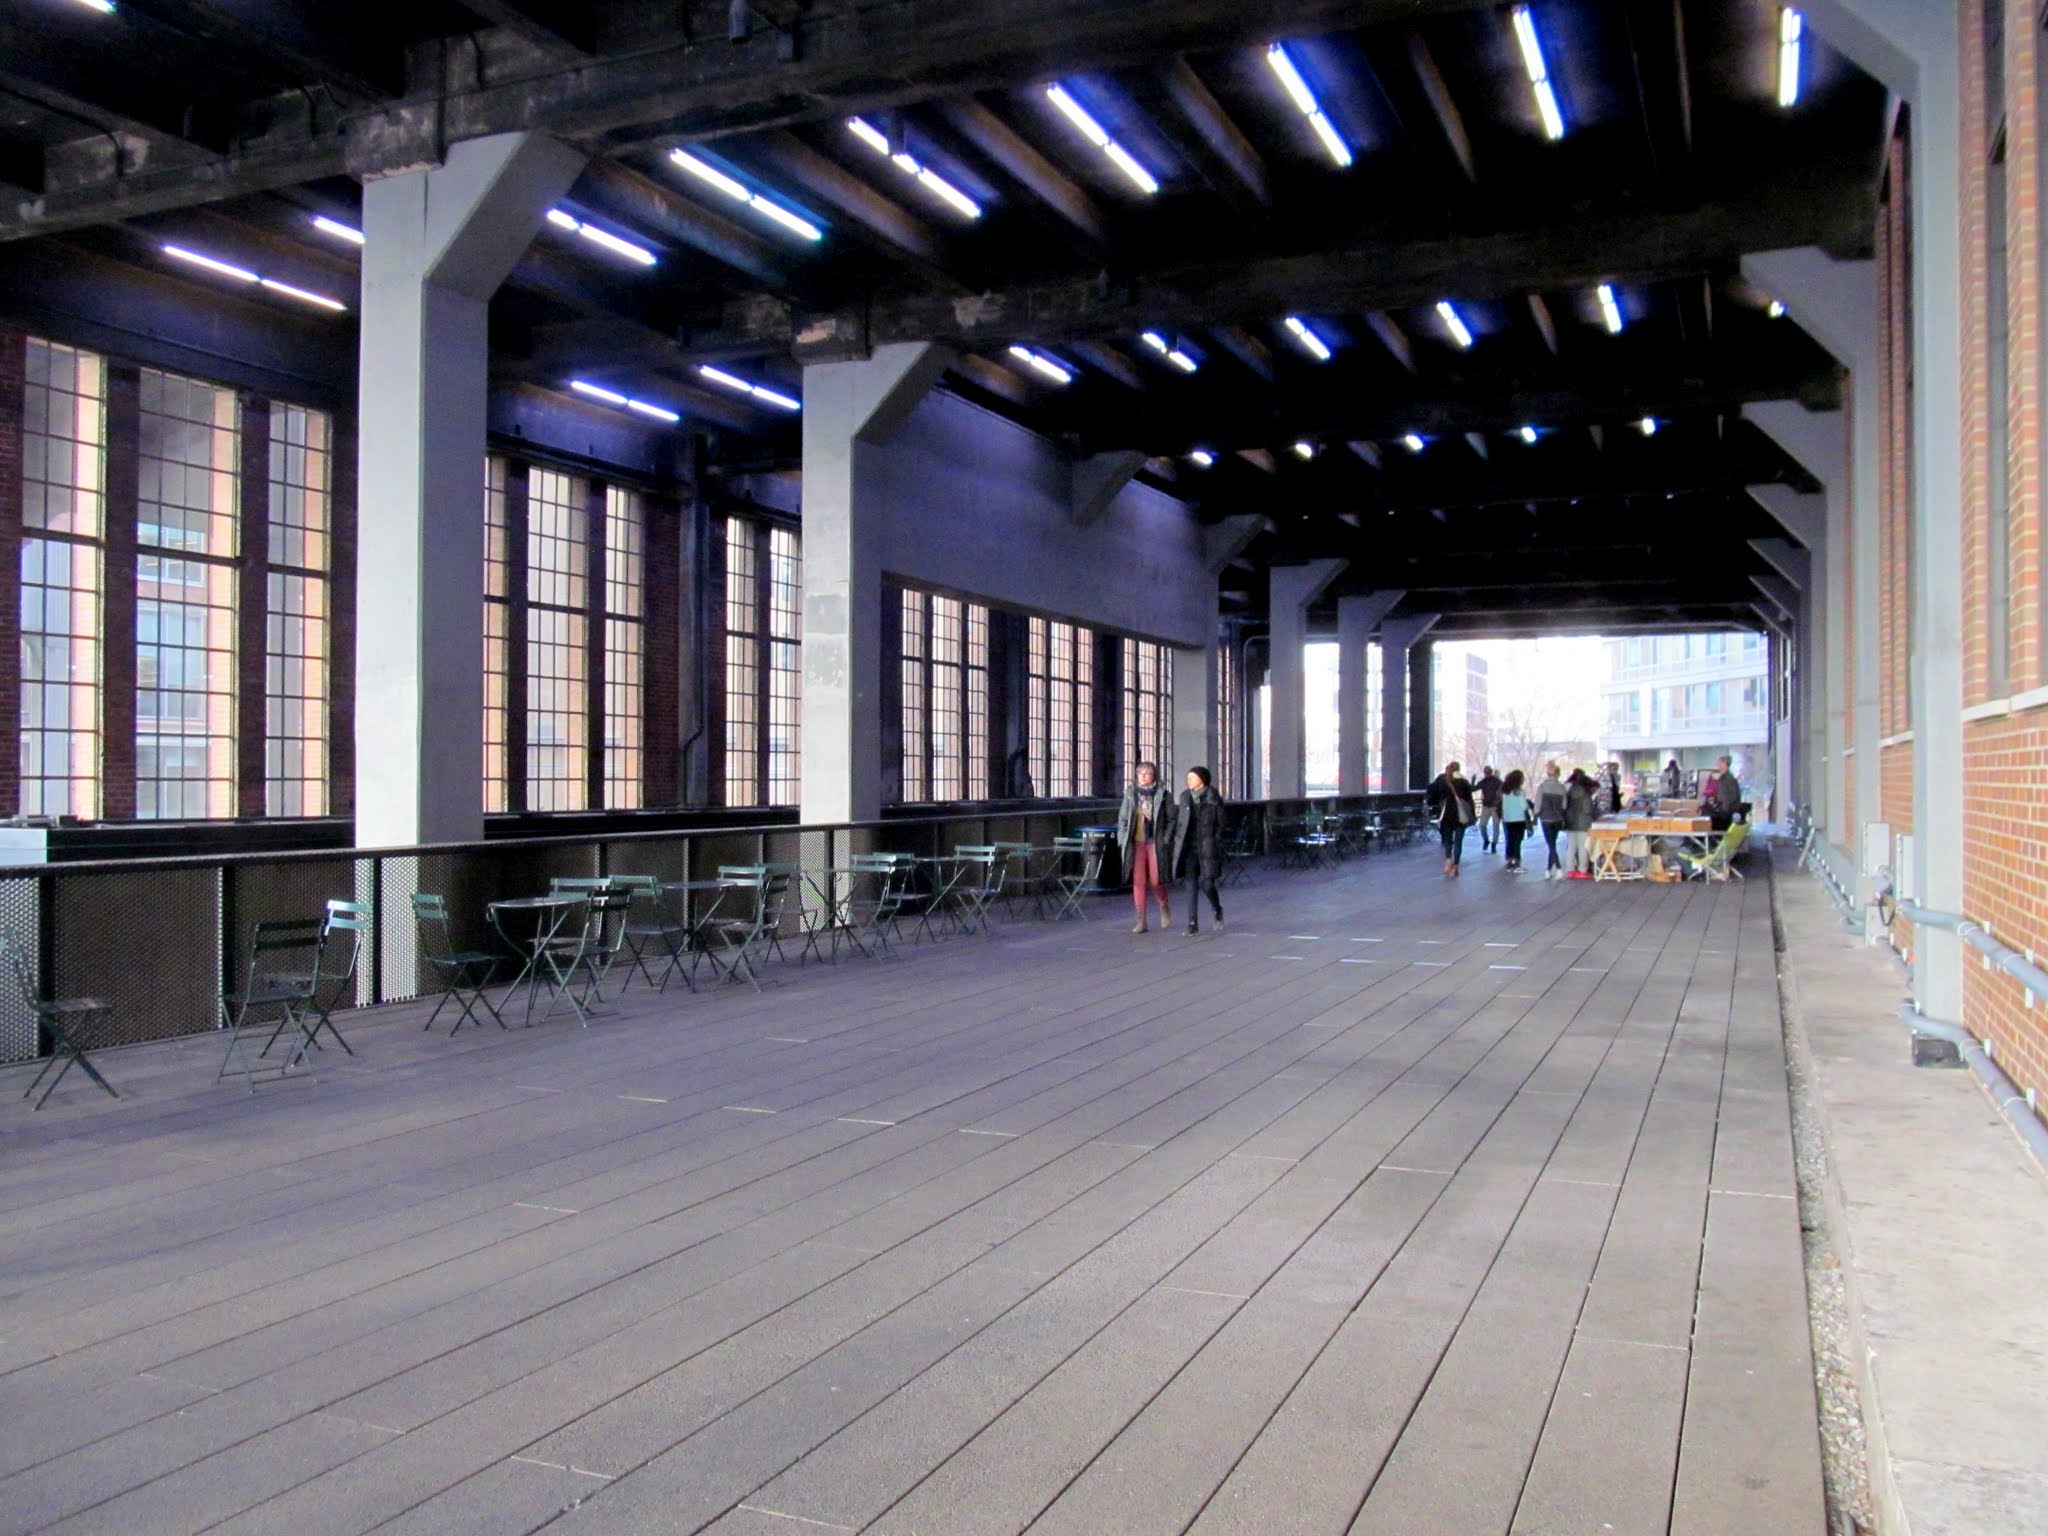 Photo: The High Line passing through a building